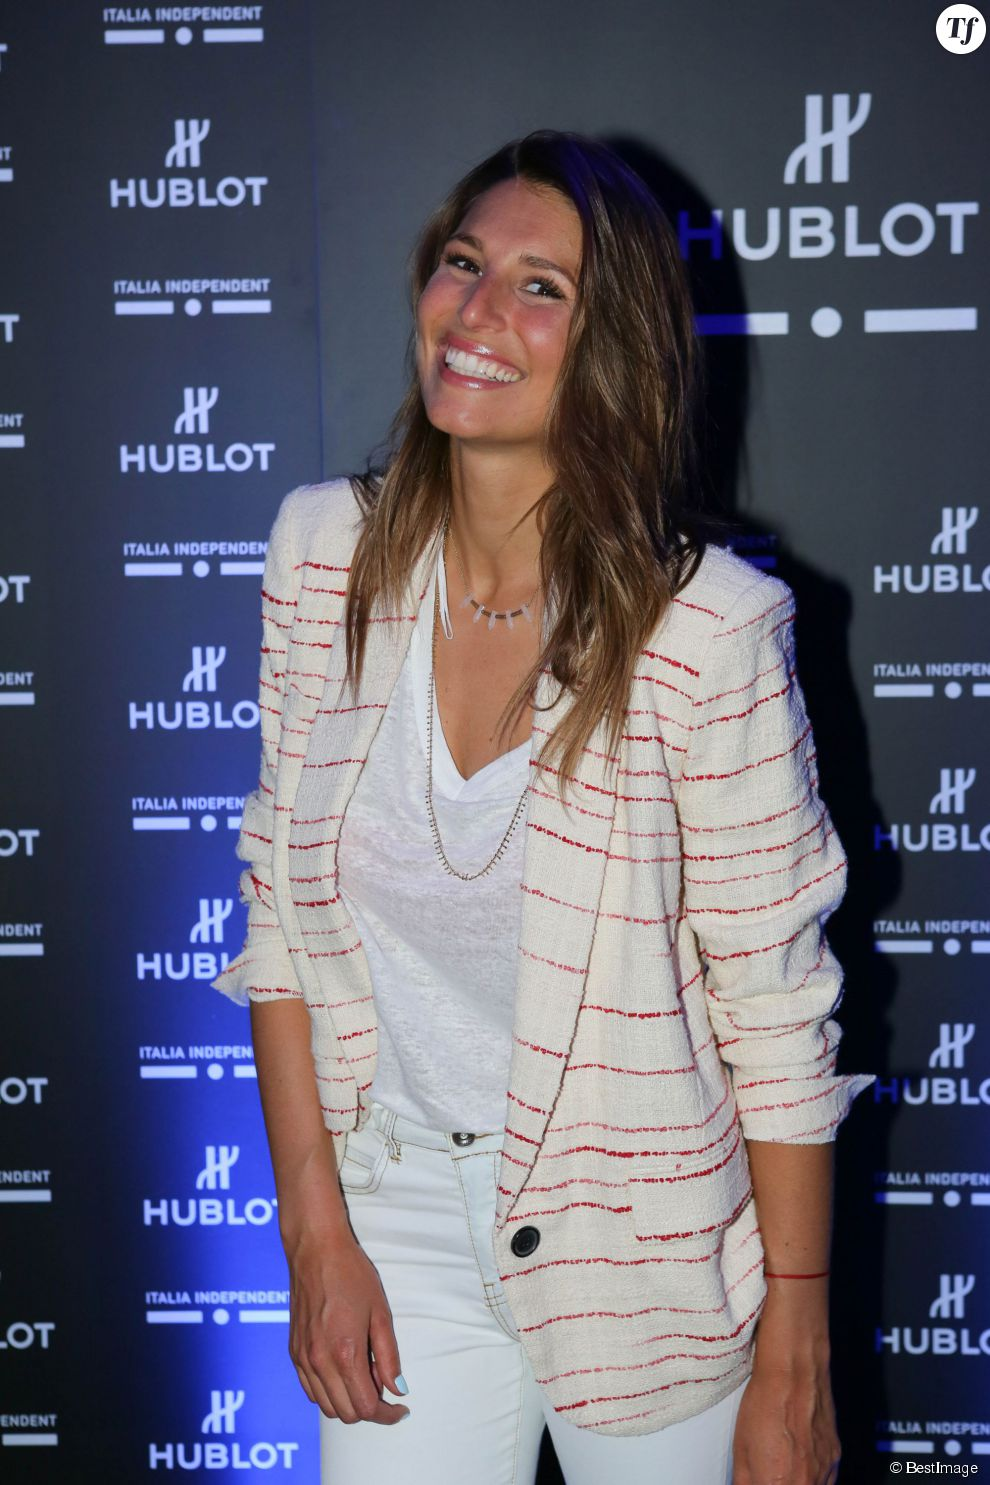 "Laury Thilleman à la soirée de lancement de la montre ""Big Bang Unico Italia Independent"" de Hublot au restaurant Monsieur Bleu à Paris, le 24 juin 2015."